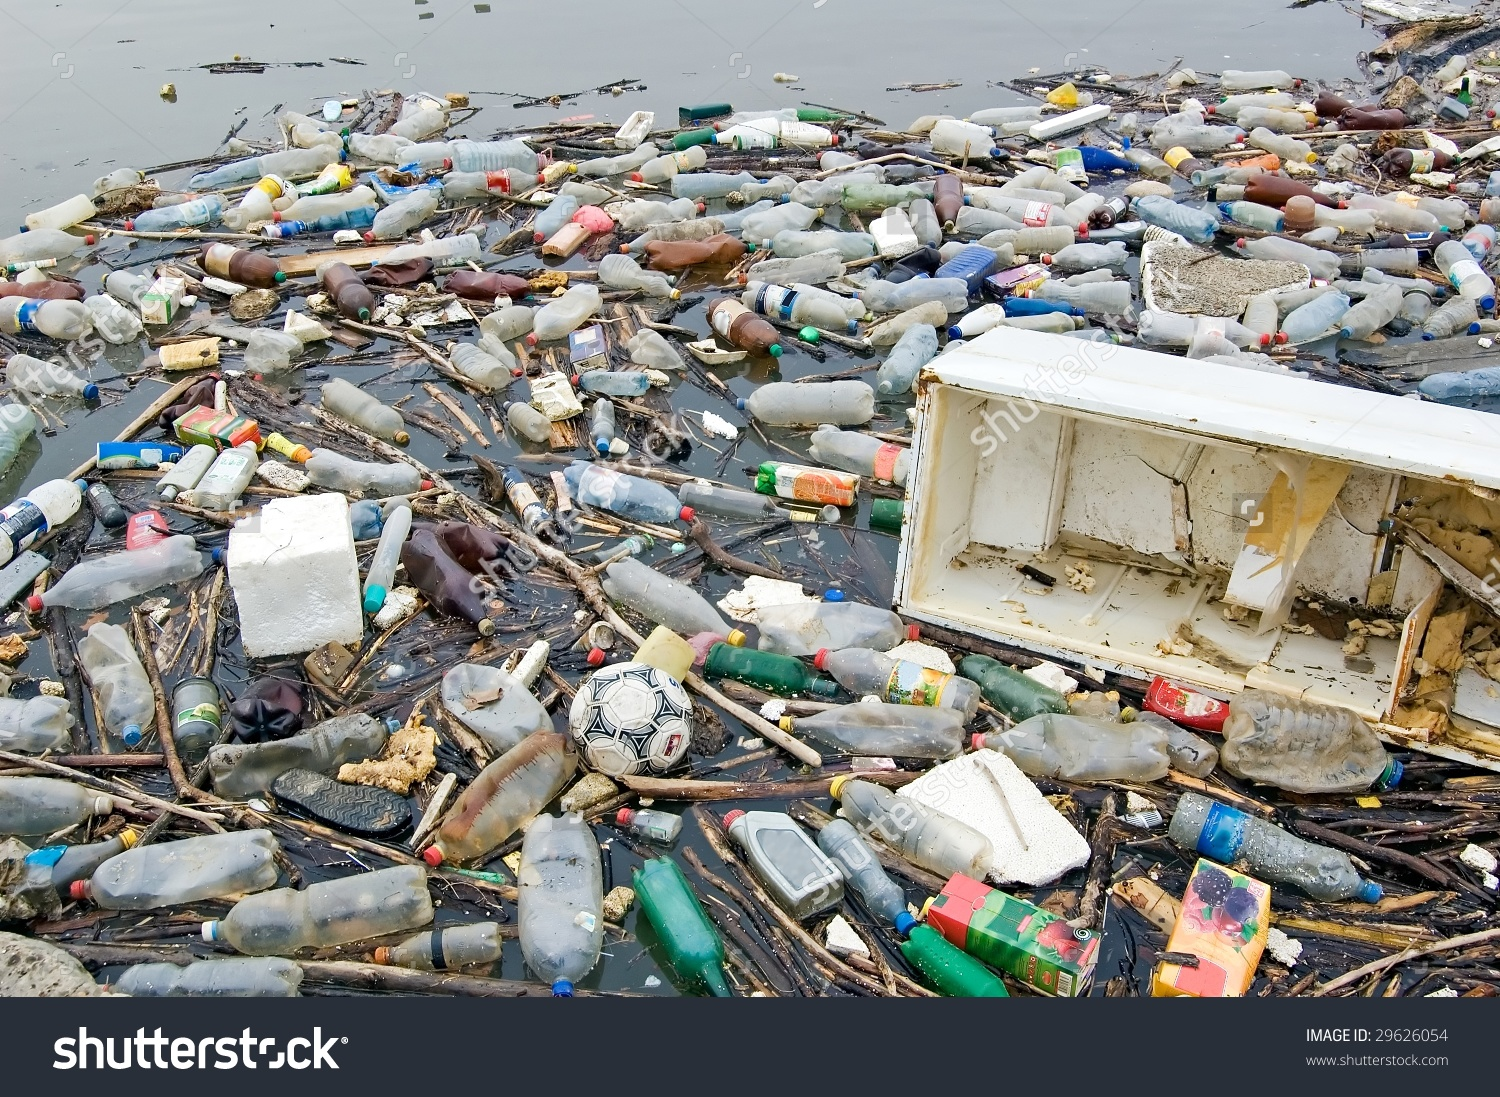 Polluted river clipart clip freeuse download Photograph Polluted River Full Rubbish Showing Stock Photo ... clip freeuse download